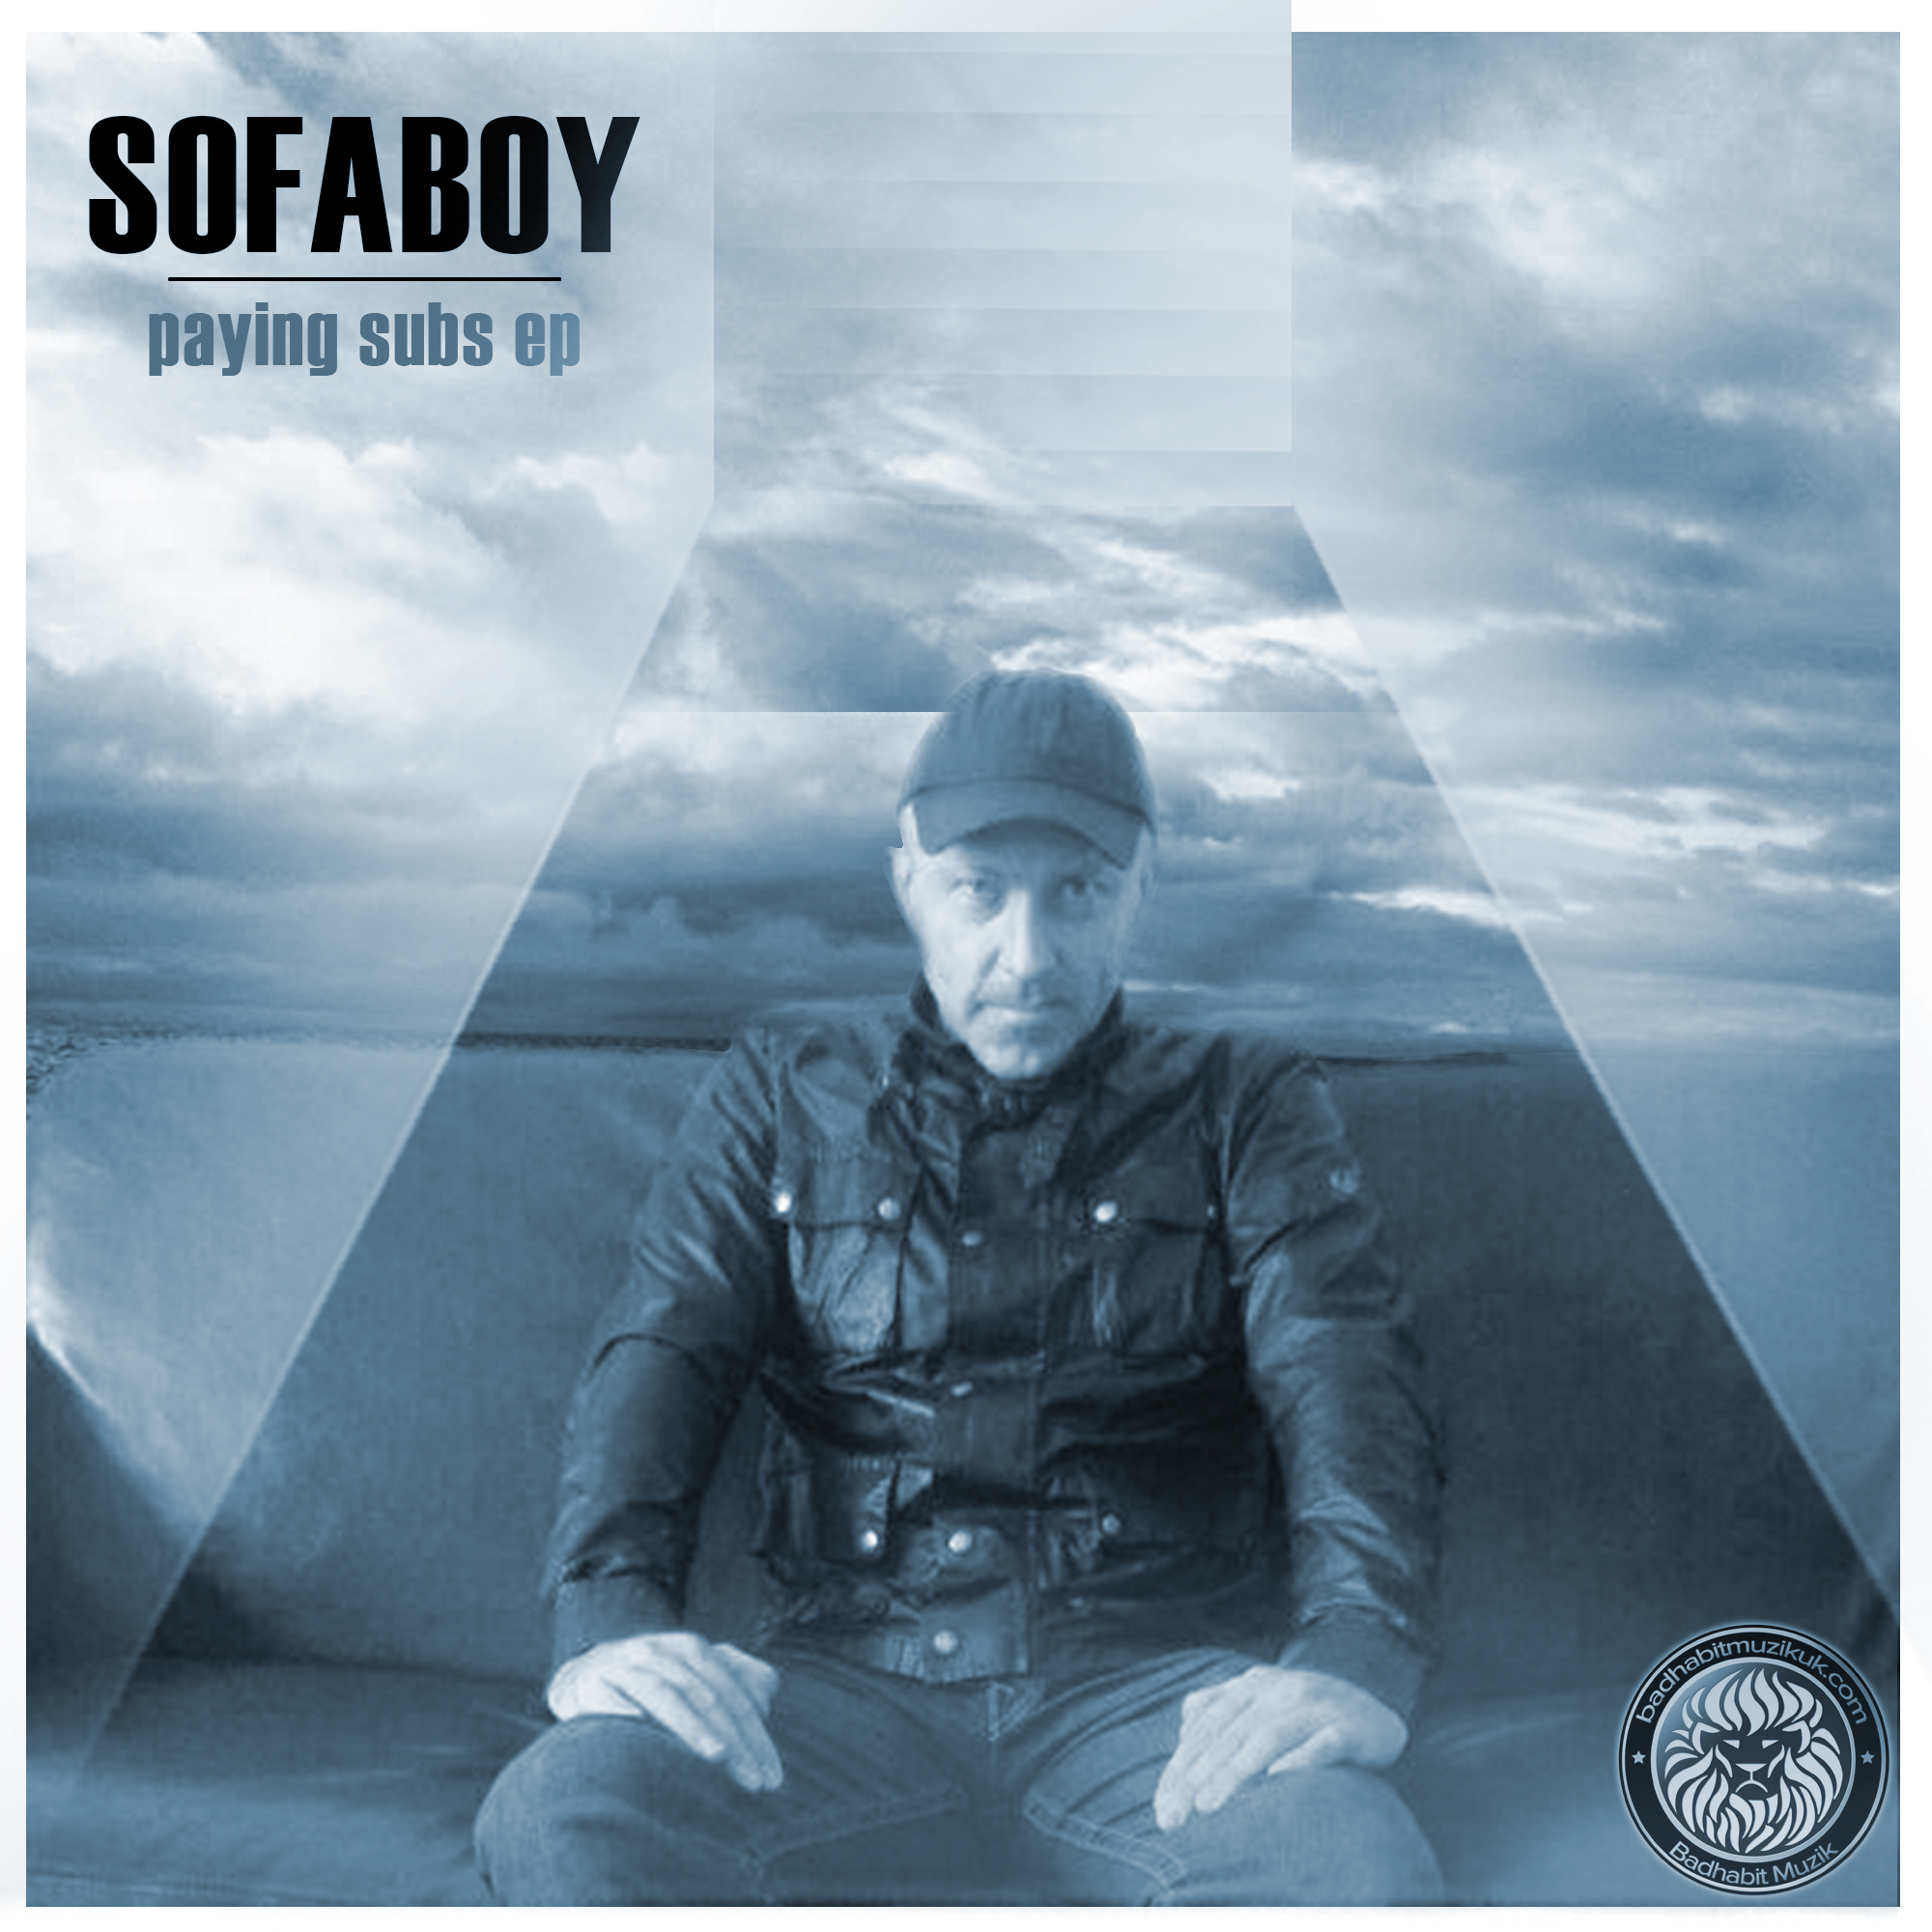 sofaboy cover